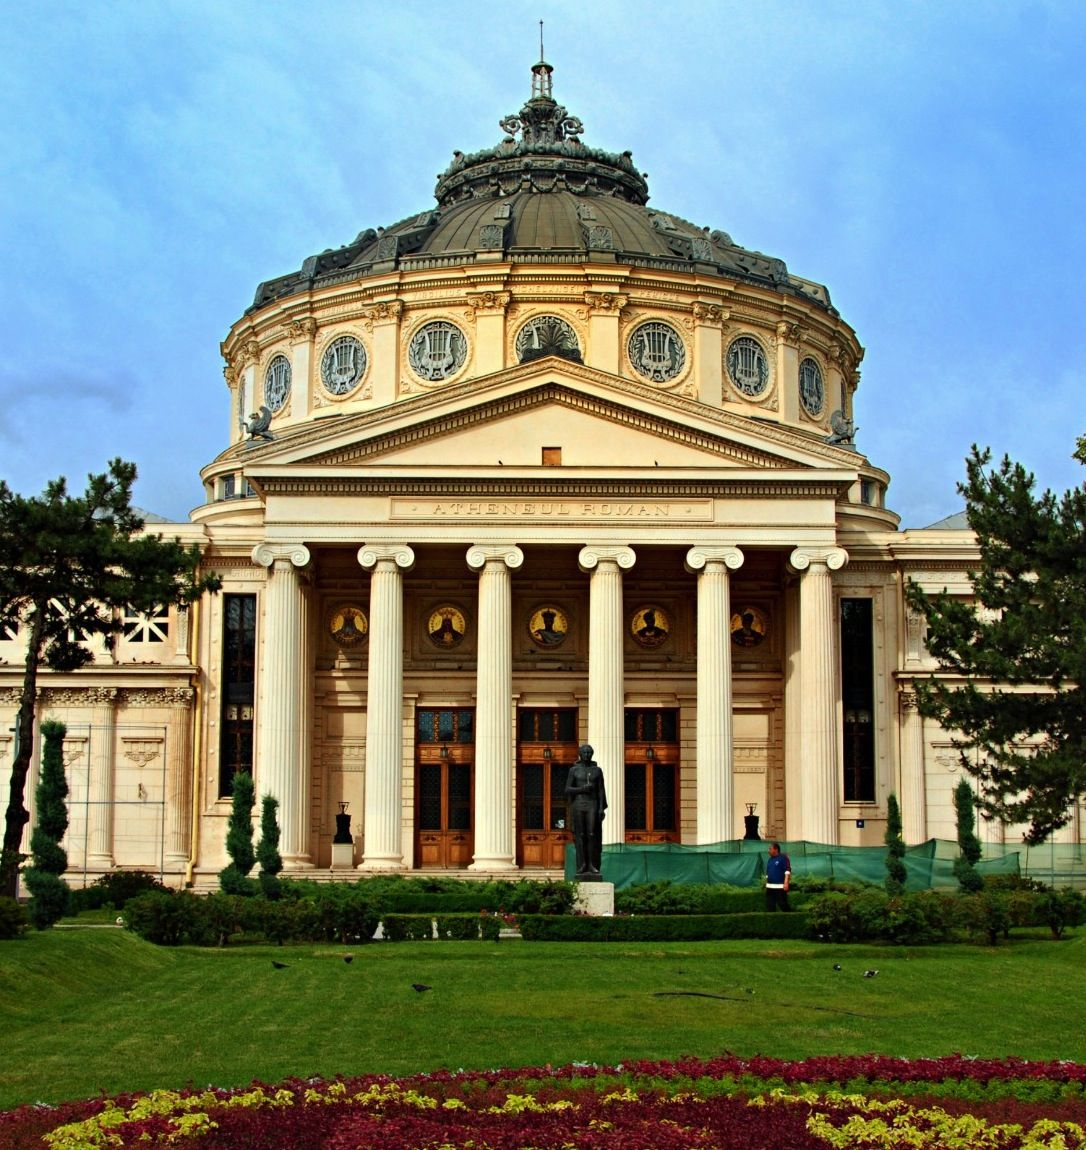 Top Places To Visit Romania: Top 10 Free Things To Do In Bucharest